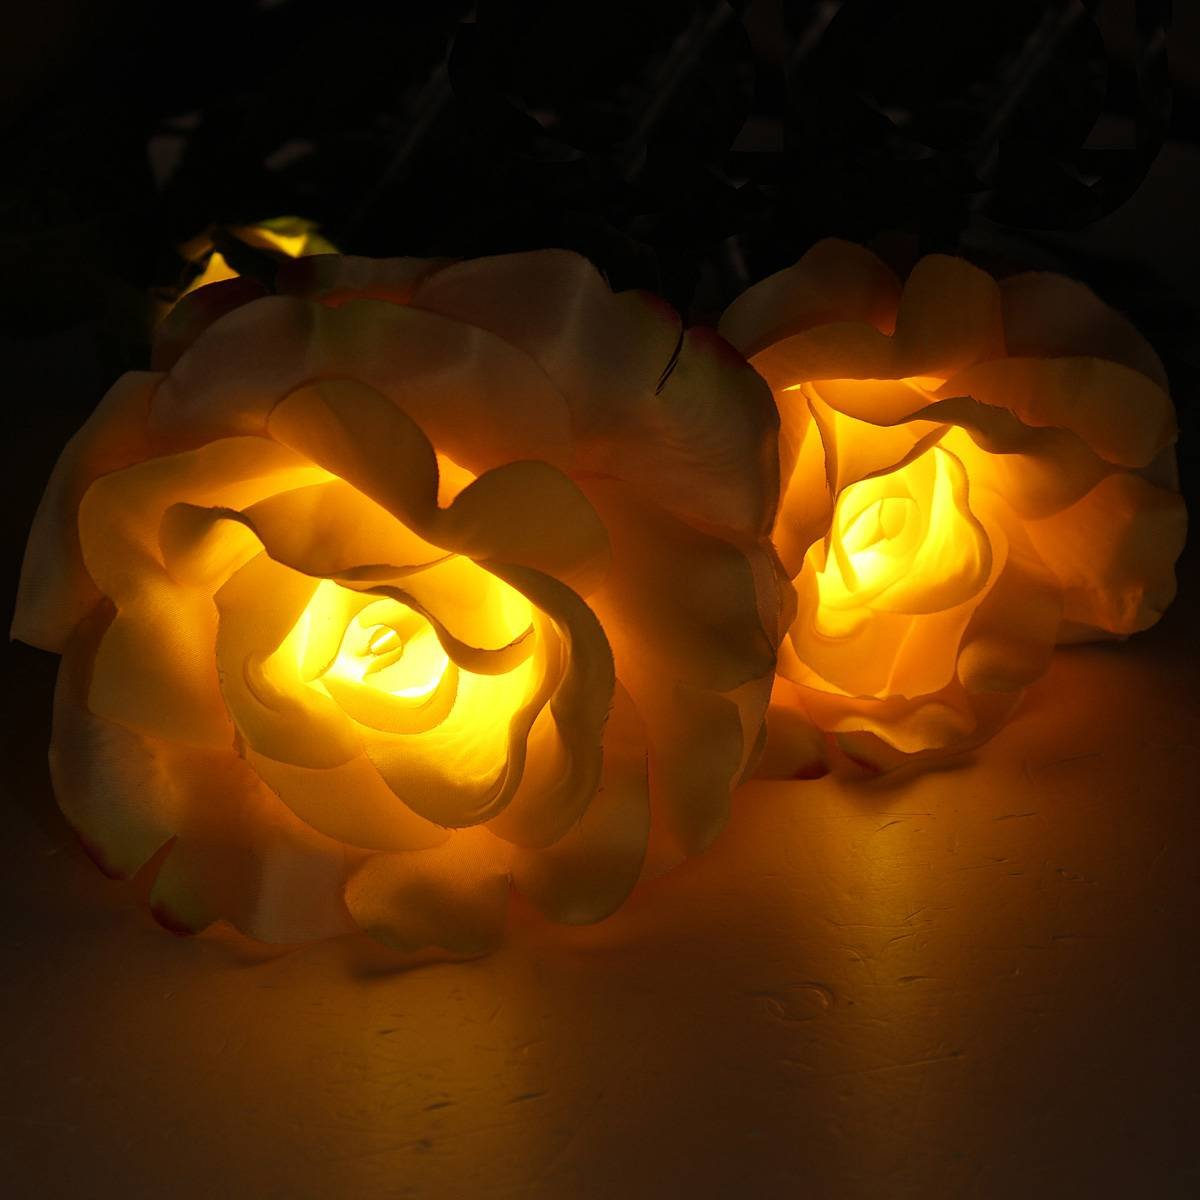 Solar Powered Yellow 3 LED Rose Flower Lights Garden Outdoor Decorative Decor Landscape Rose Light Path Lamp